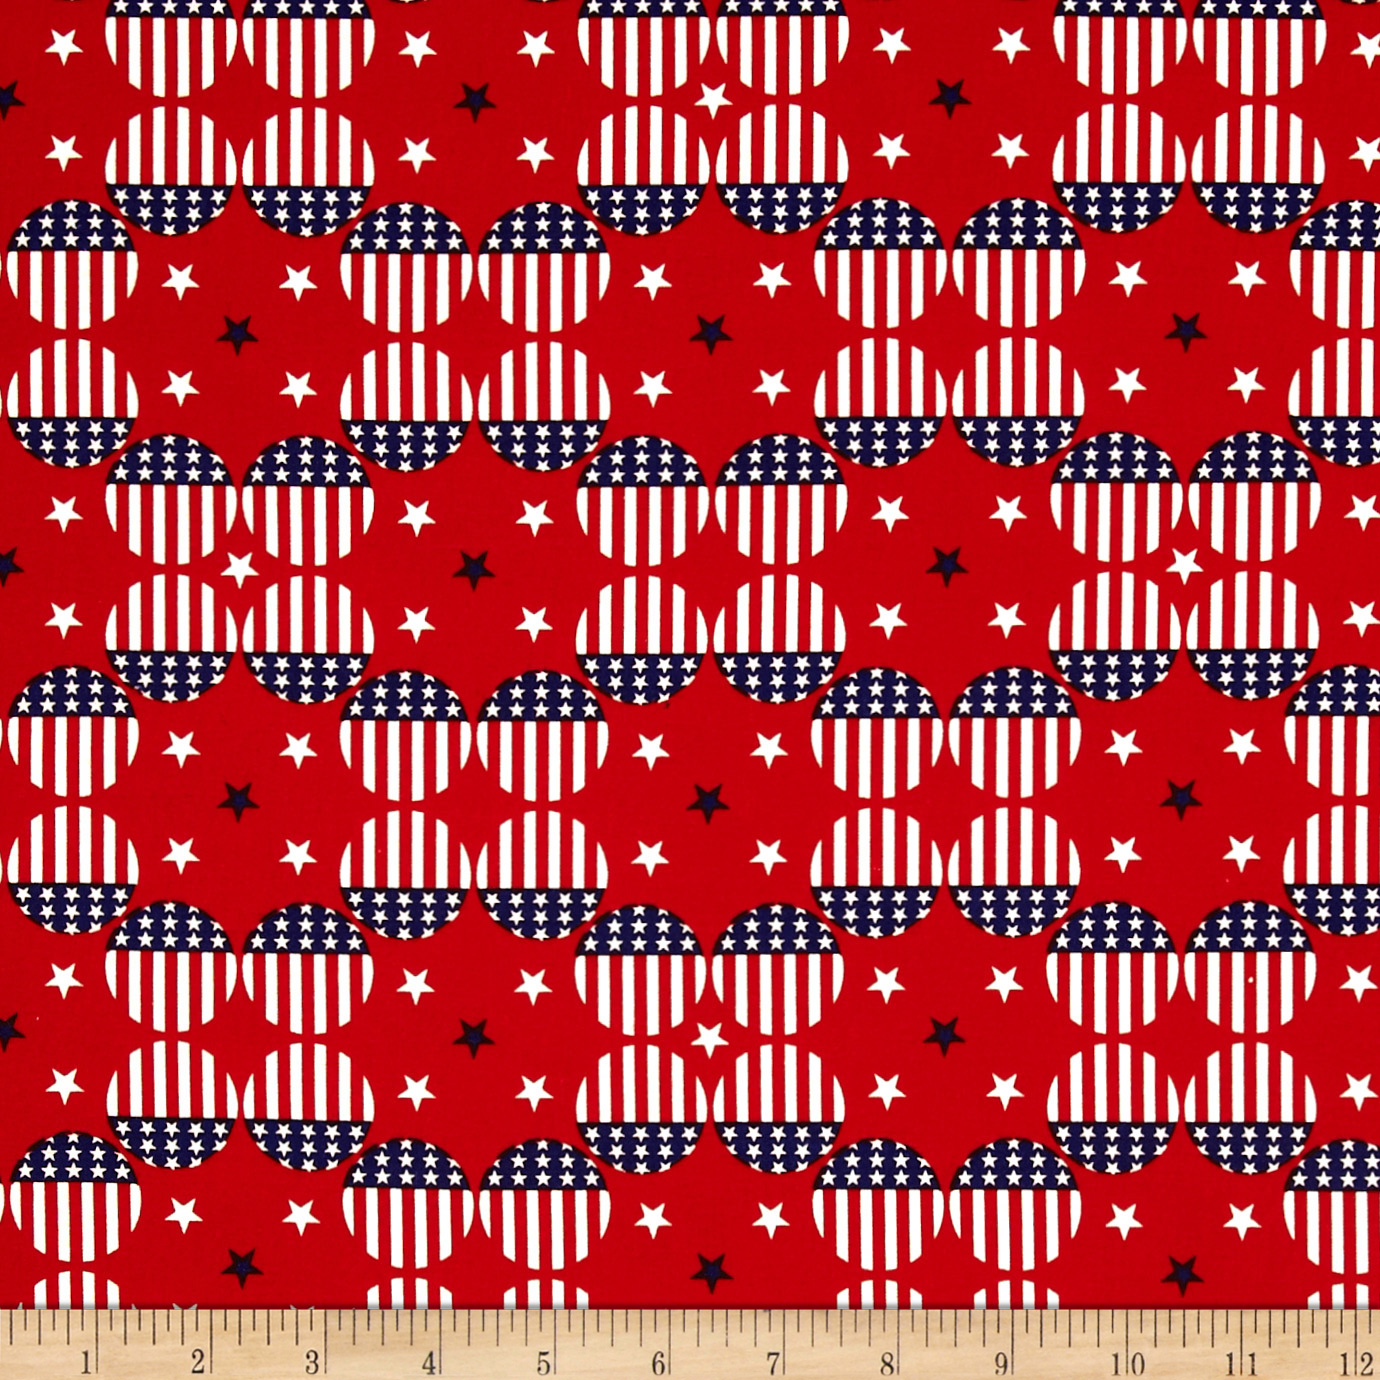 Stars & Stripes II Flag Dots Red/White/Blue Fabric